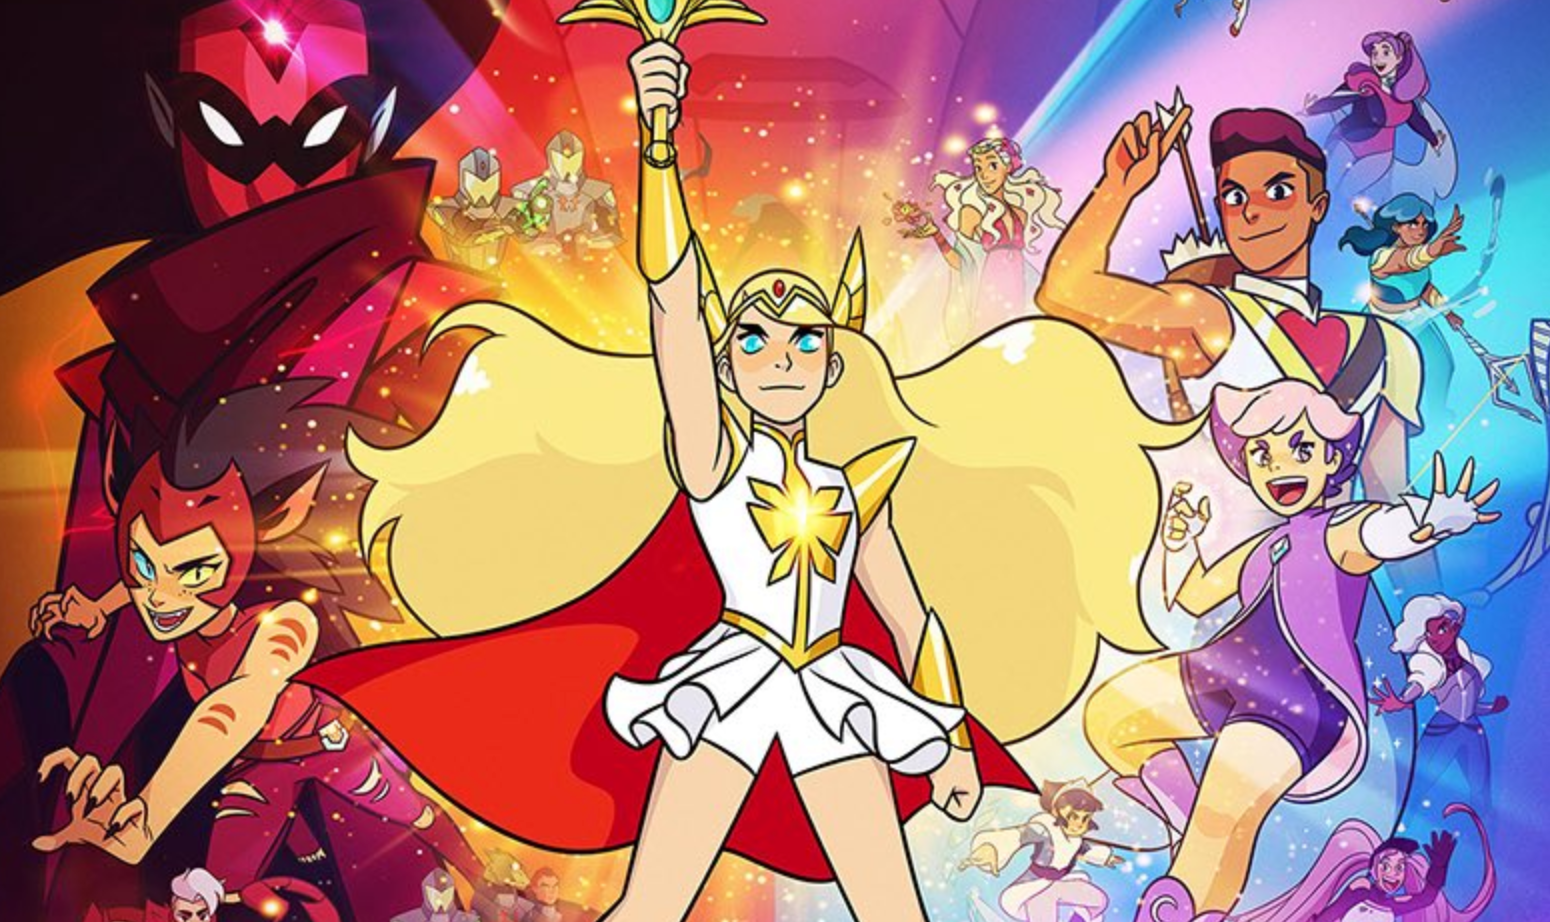 She-Ra Season 5 Sneak Peek Revealed